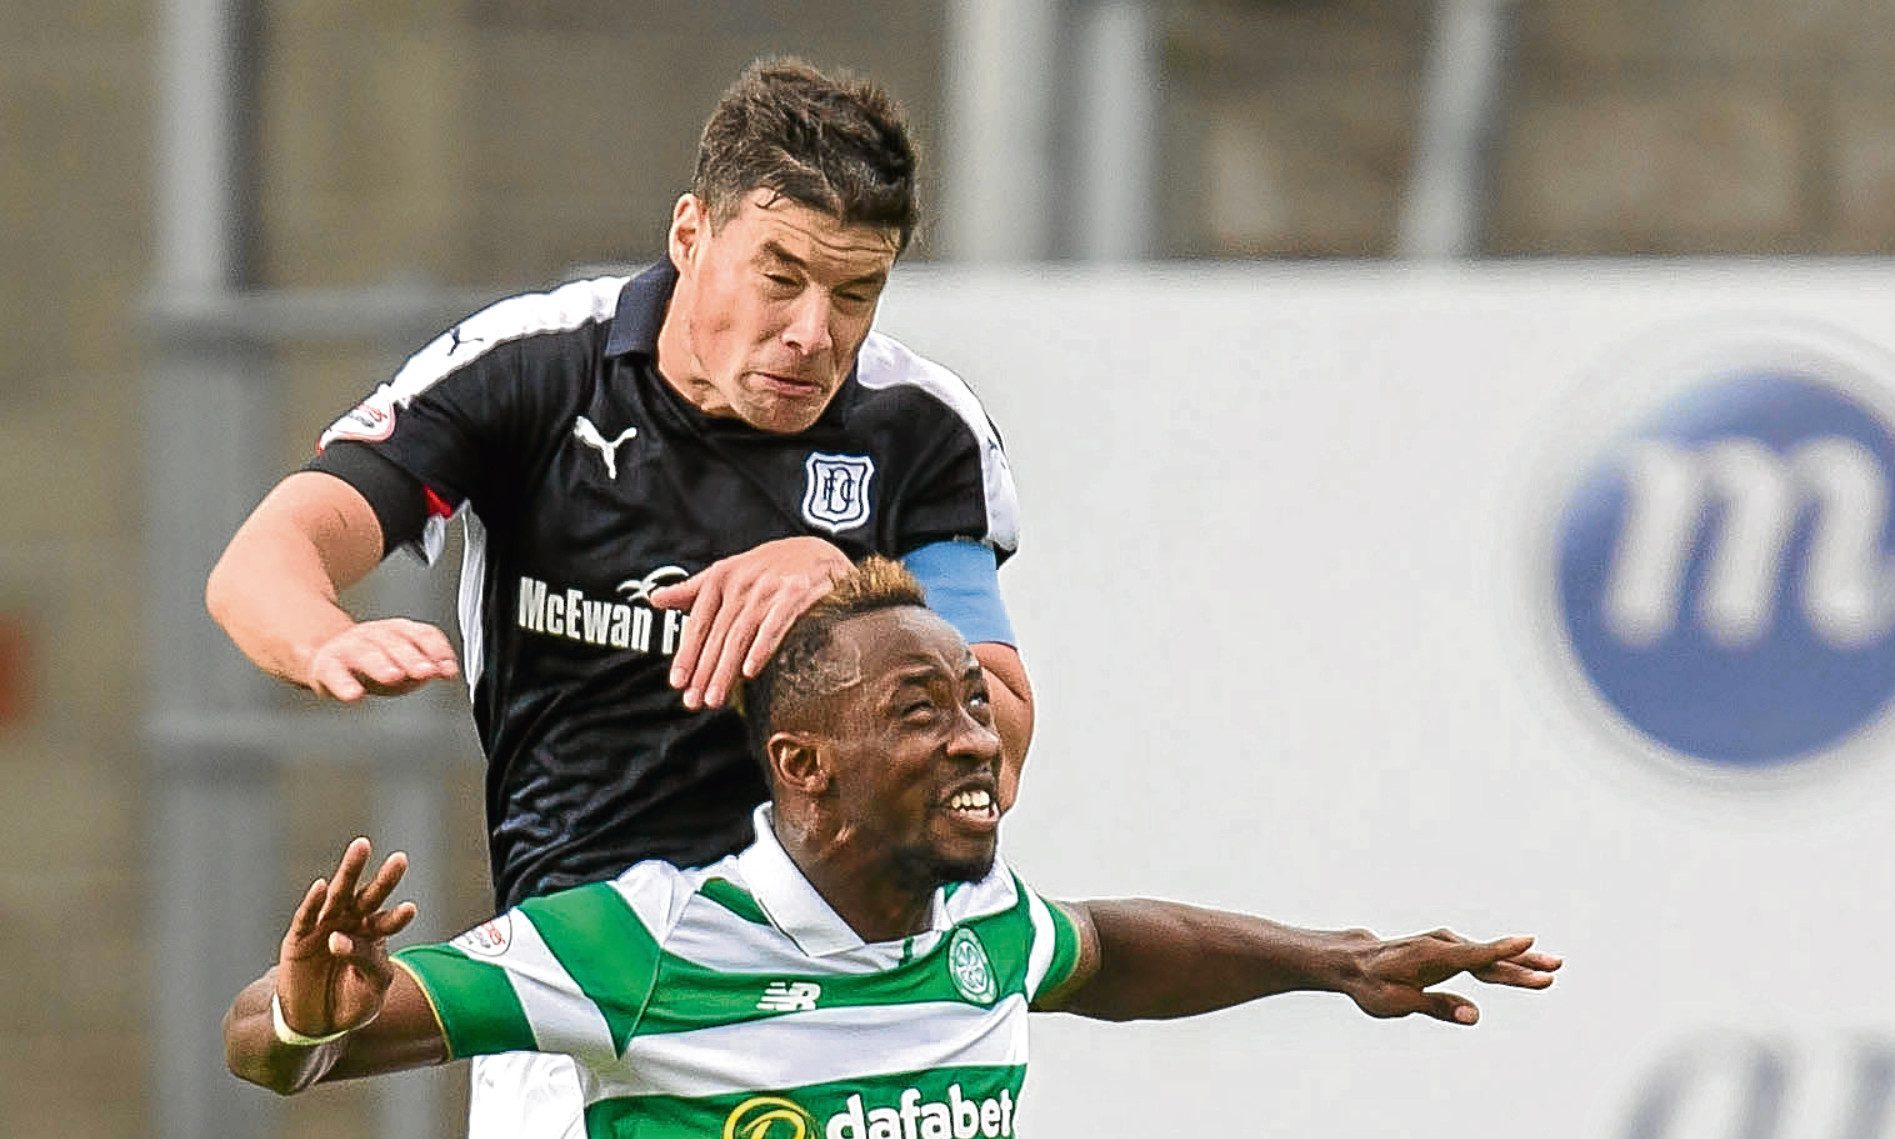 Darren O'Dea outjumps Celtic's Moussa Dembele at Dens on Saturday. Picture by David Young